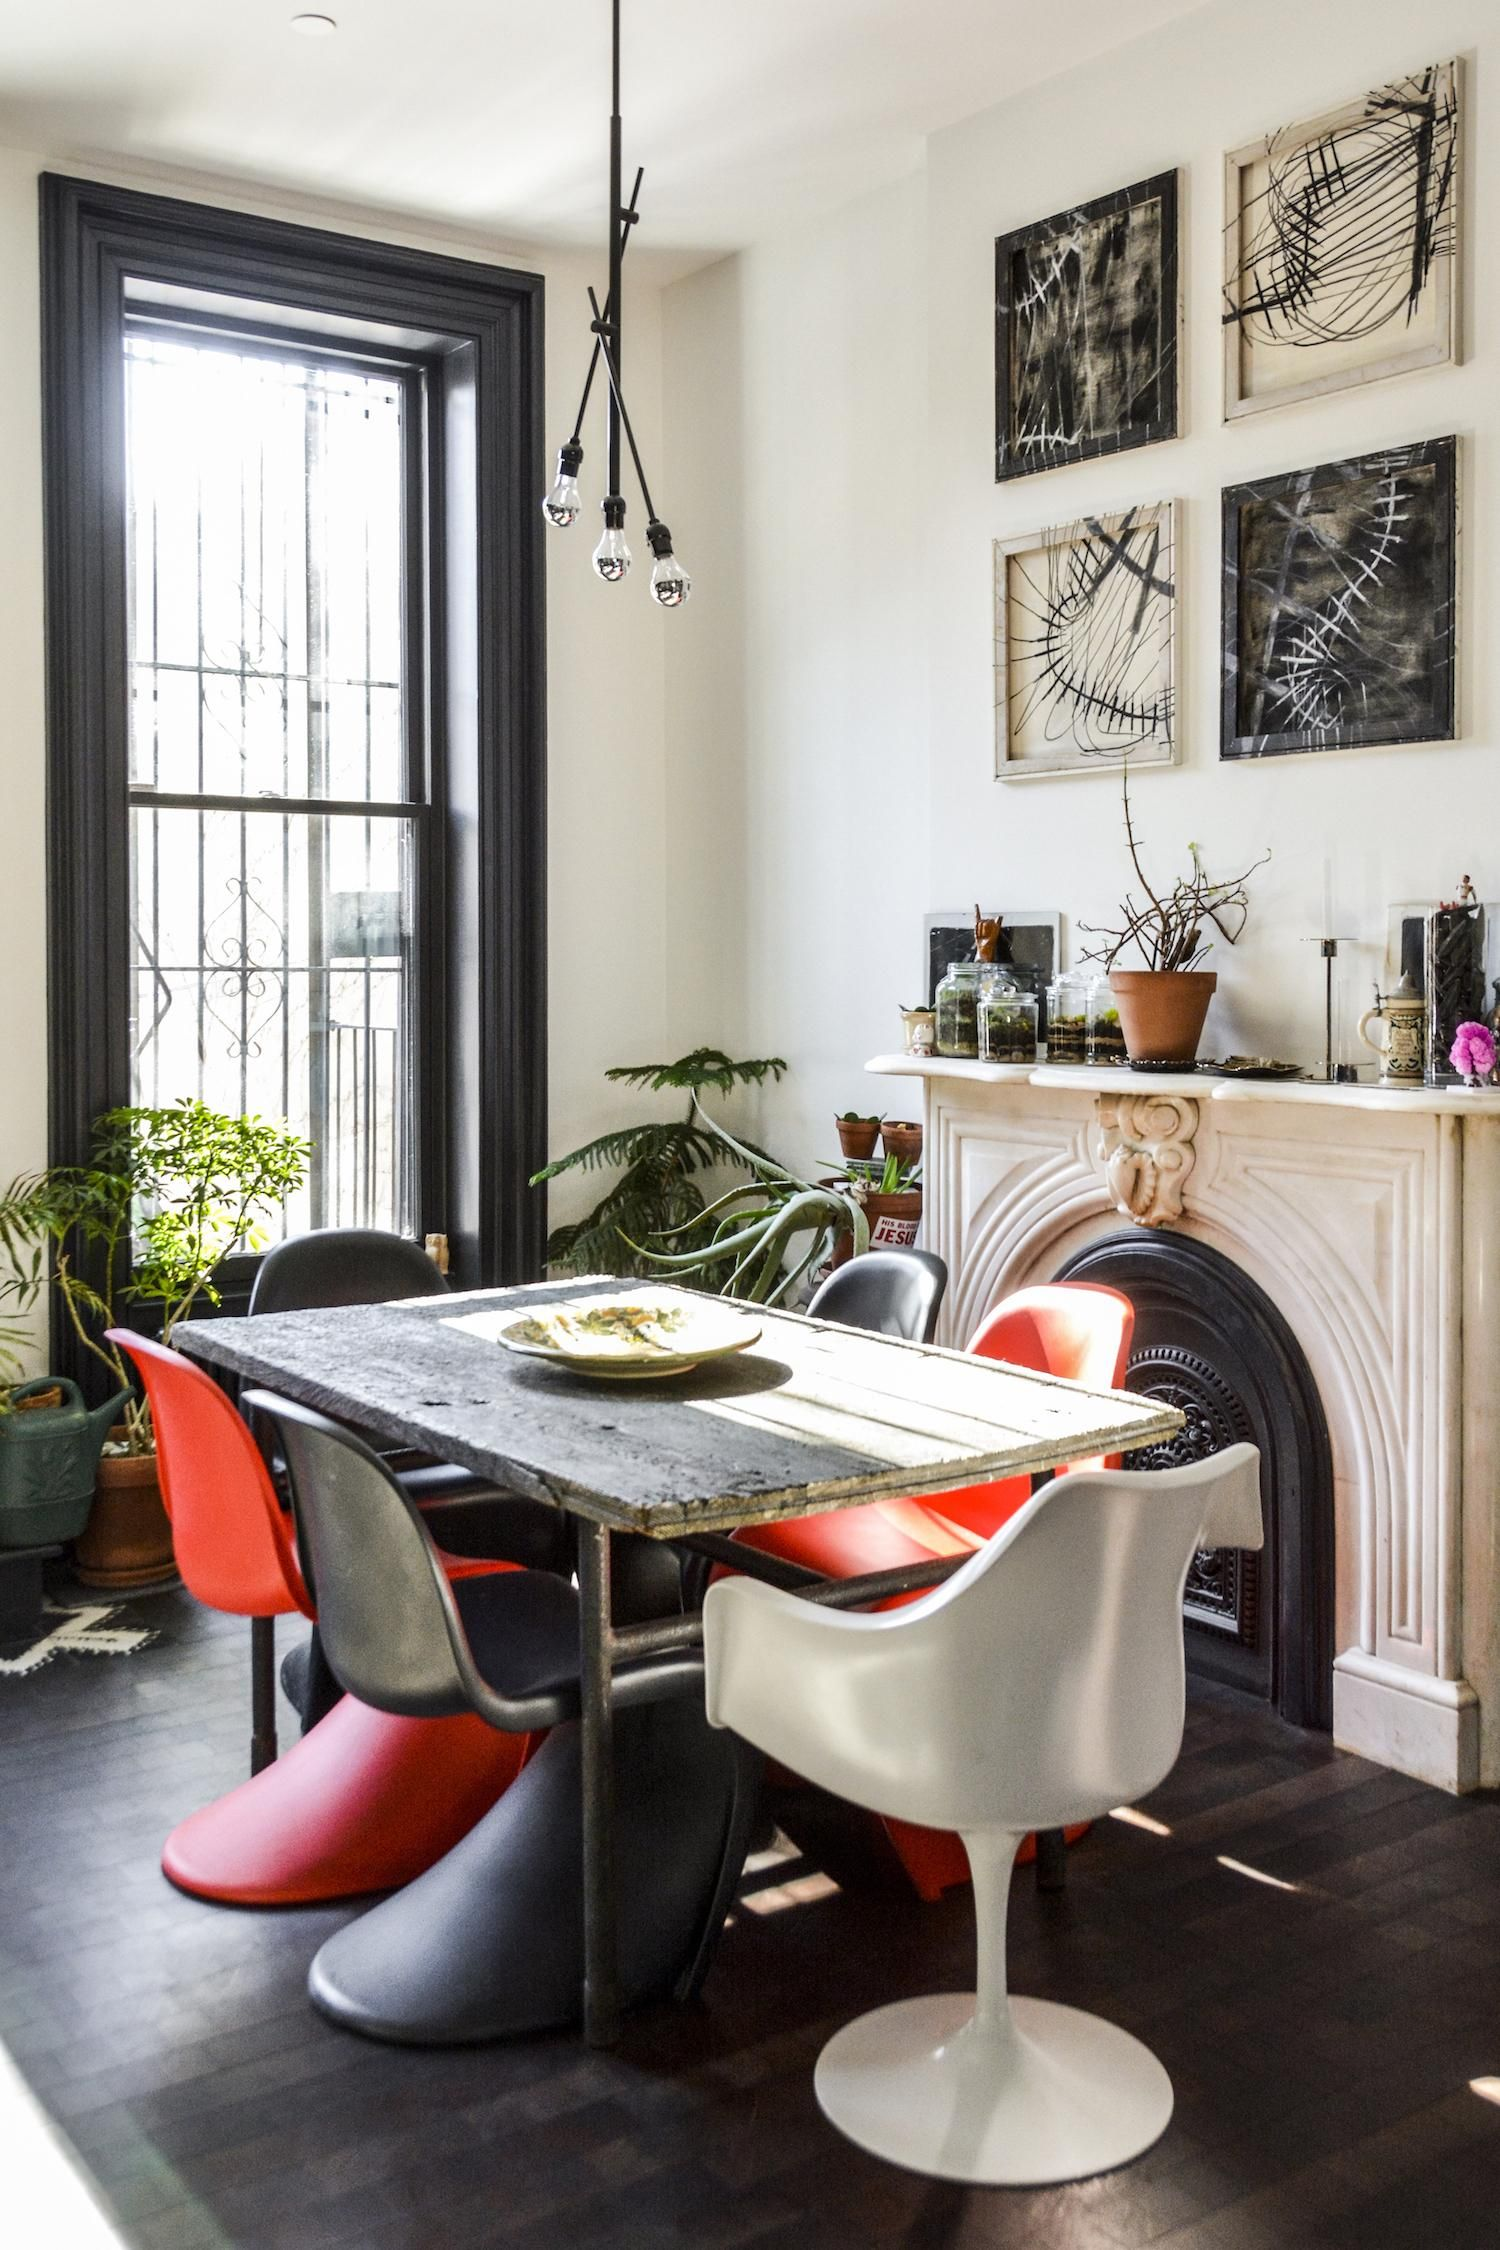 Two Young Architects Tackle Their Own Brooklyn Townhouse Old DoorsFine DiningDining Room TablesDream